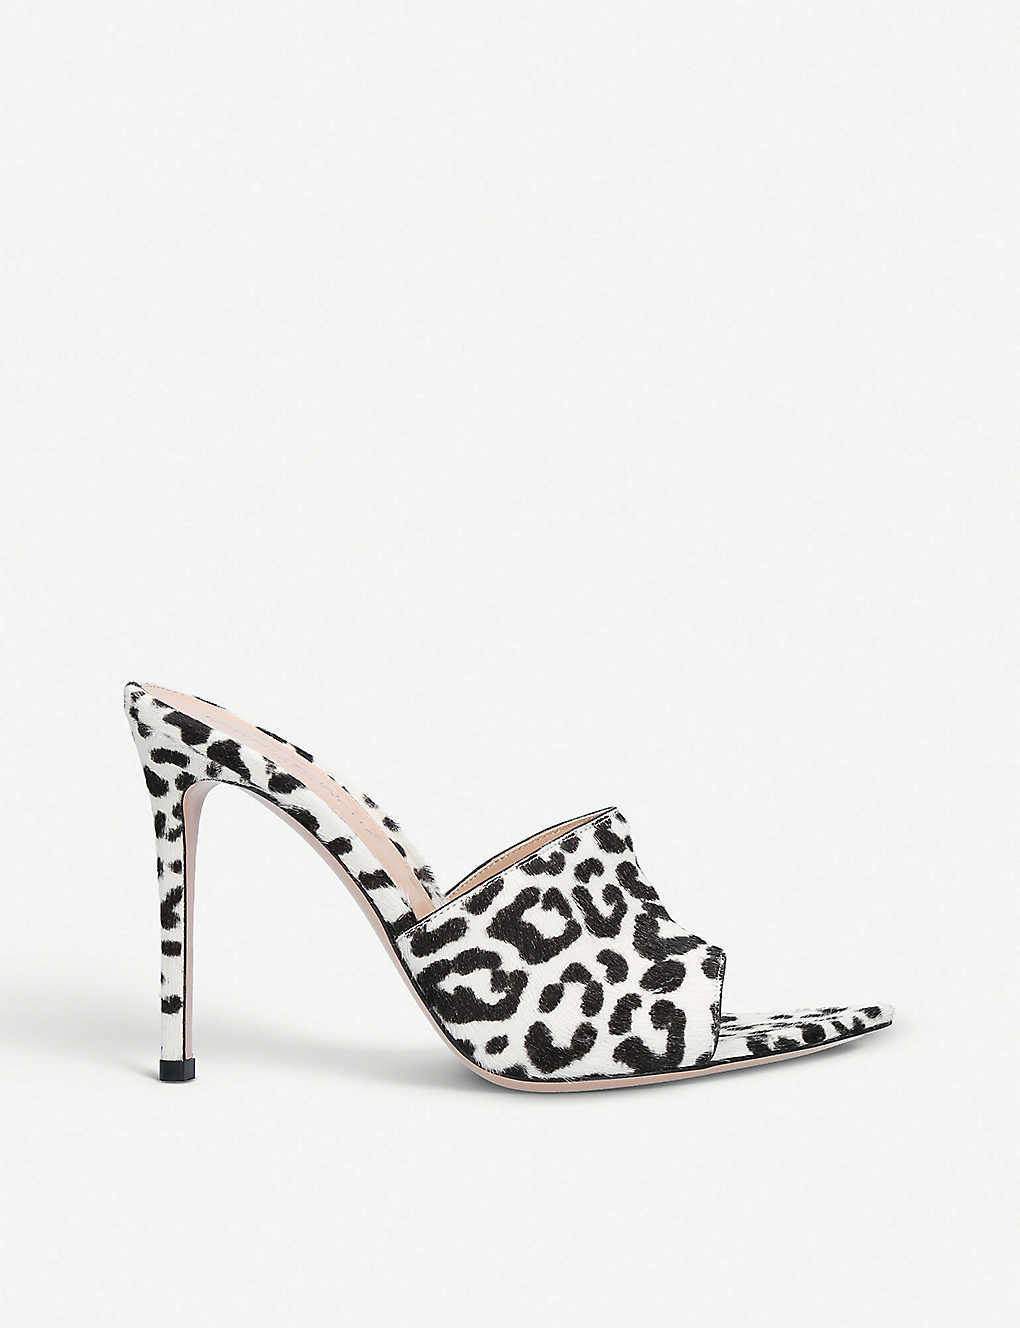 03afd2114139 GIANVITO ROSSI Haircalf Alise 105 leopard-printed ponyhair heeled mules